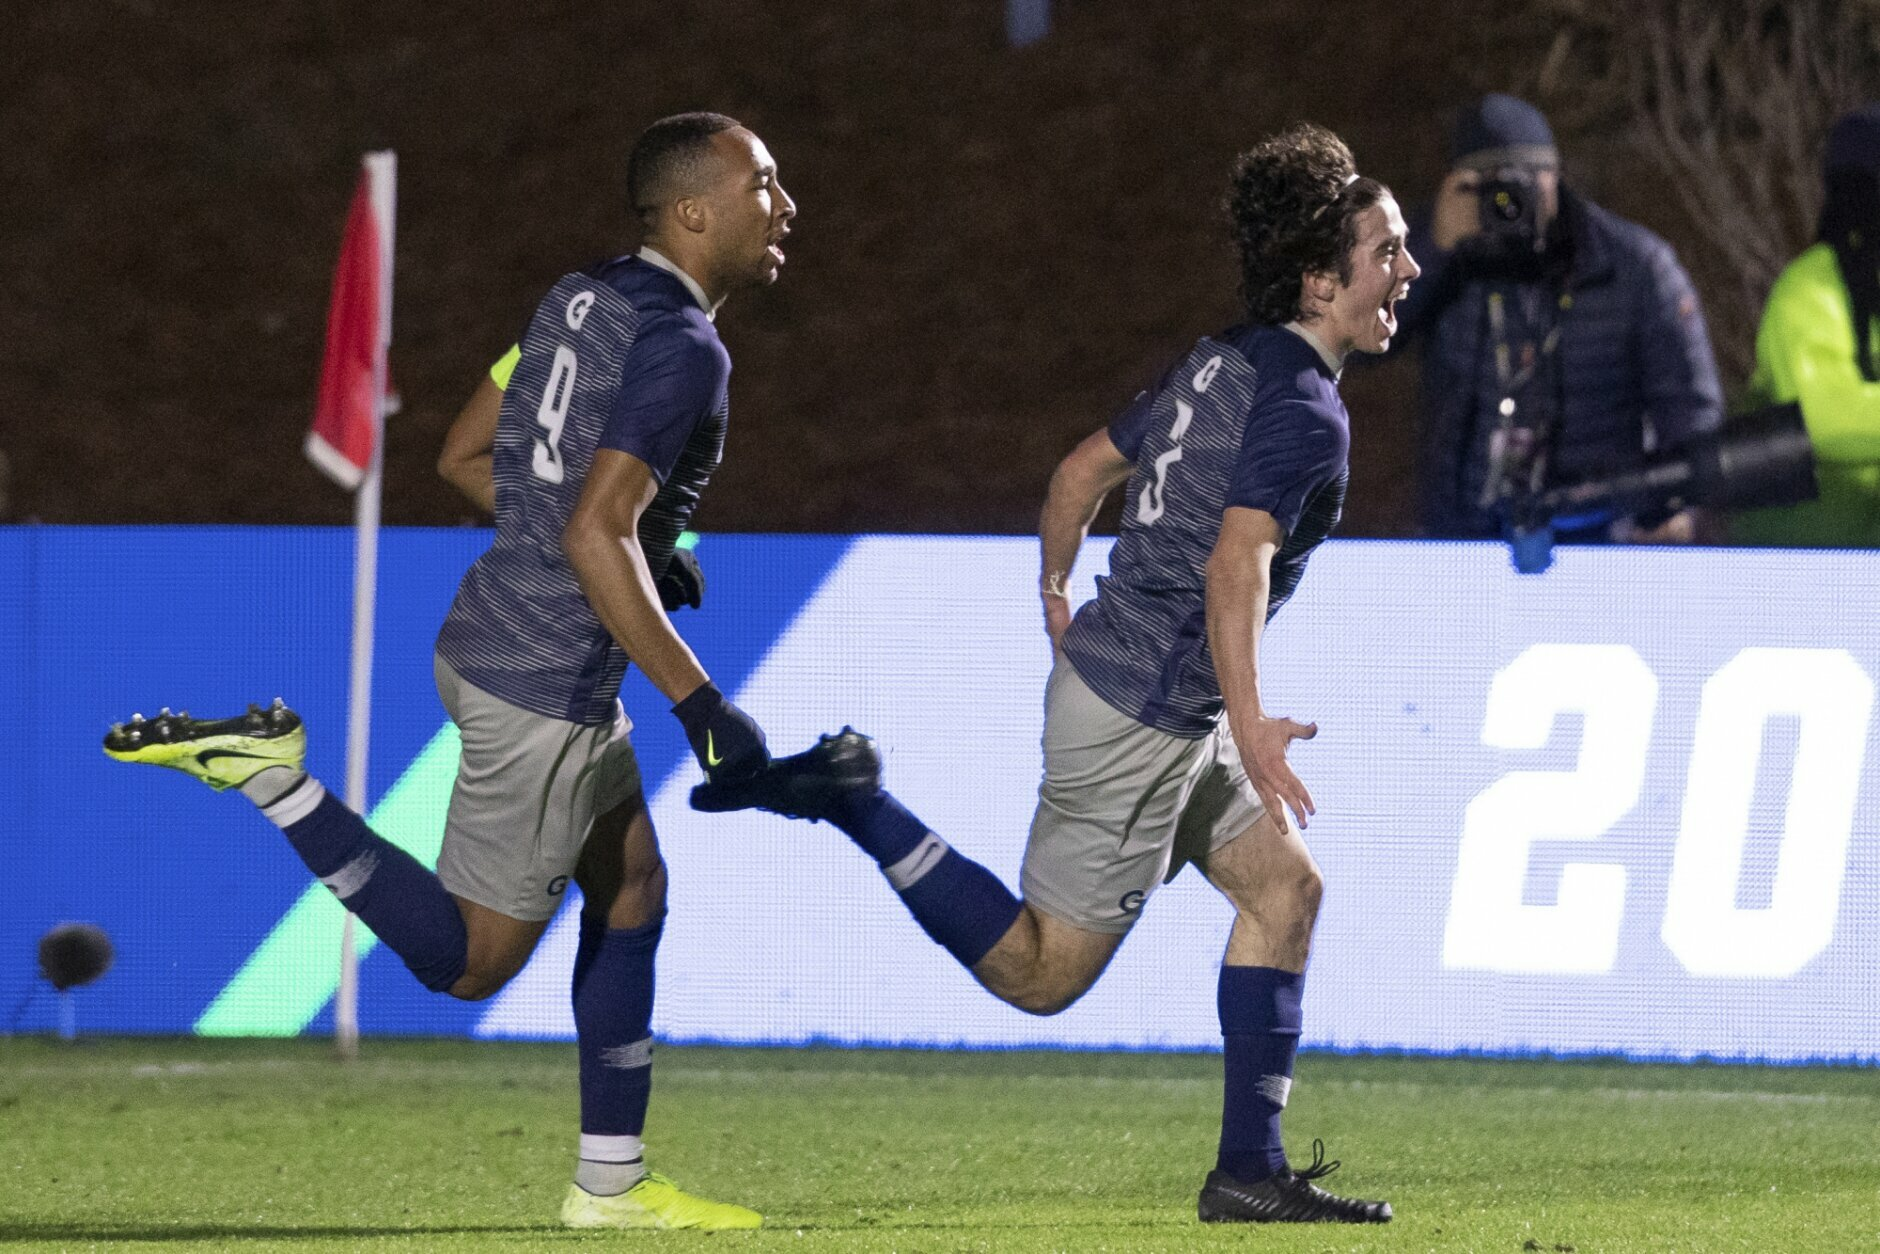 <p><strong>9. Georgetown soccer wins title in PKs</strong></p> <p>A rollicking, back-and-forth game that saw Georgetown push ahead in the 81<sup>st</sup> minute, only for Virginia to tie it in the 86<sup>th</sup> couldn't be settled by two overtime periods. Deadlocked 3-3, nobody could miss in penalty kicks until the Hoyas' freshman keeper Tomas Romero saved Axel Gunnarsson's shot on in the seventh round, clinching the first ever soccer title for the Hoyas. Despite featuring a matchup of the nation's top two defenses, Georgetown and Virginia combined for six goals, the three against the Cavaliers marking a season high.</p>